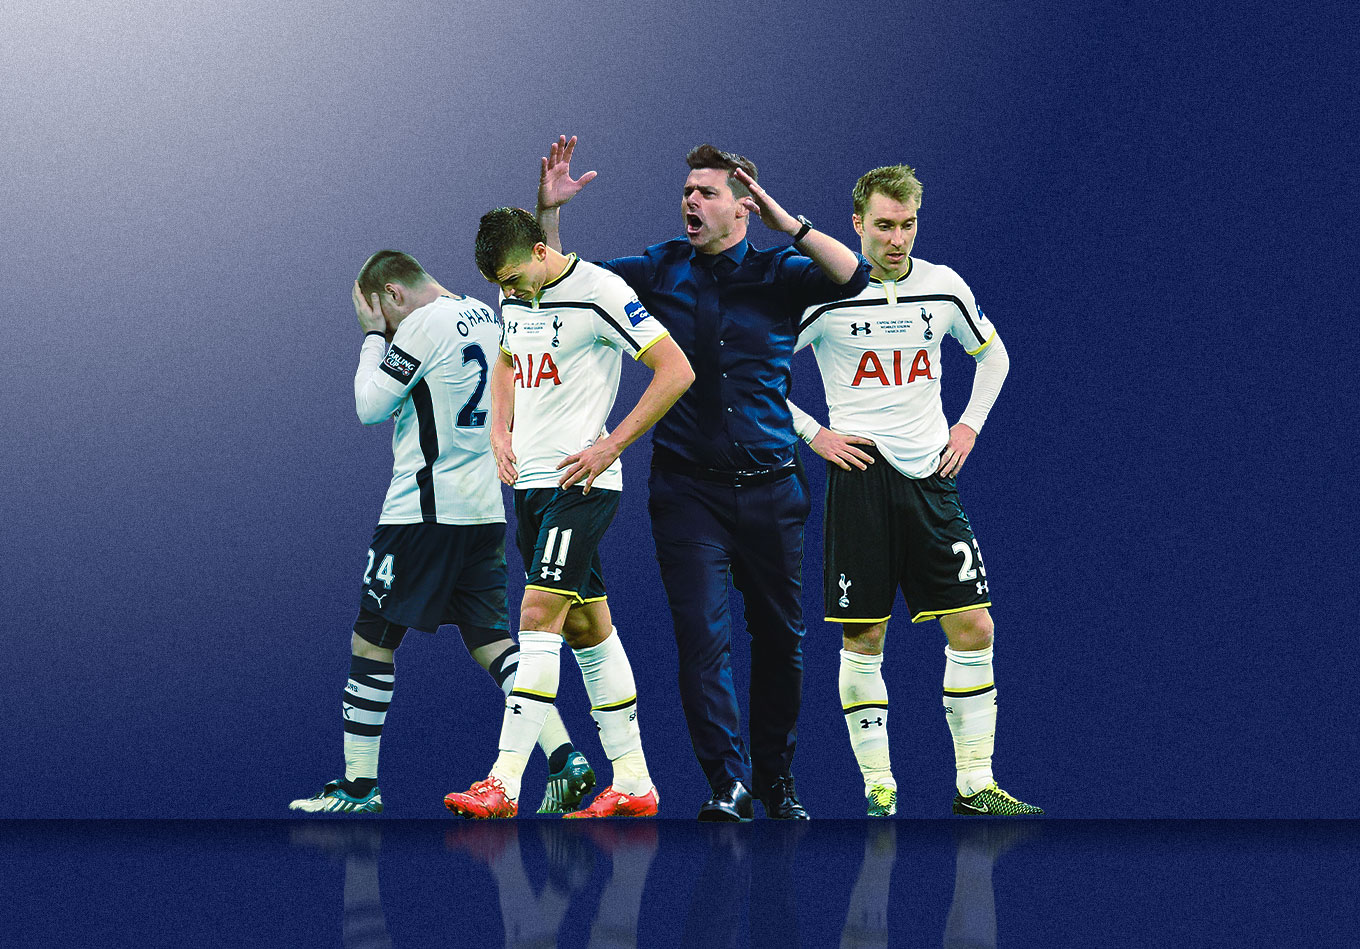 Spurs' Cup Final Jinx: Can They Make It Fourth Time Lucky?